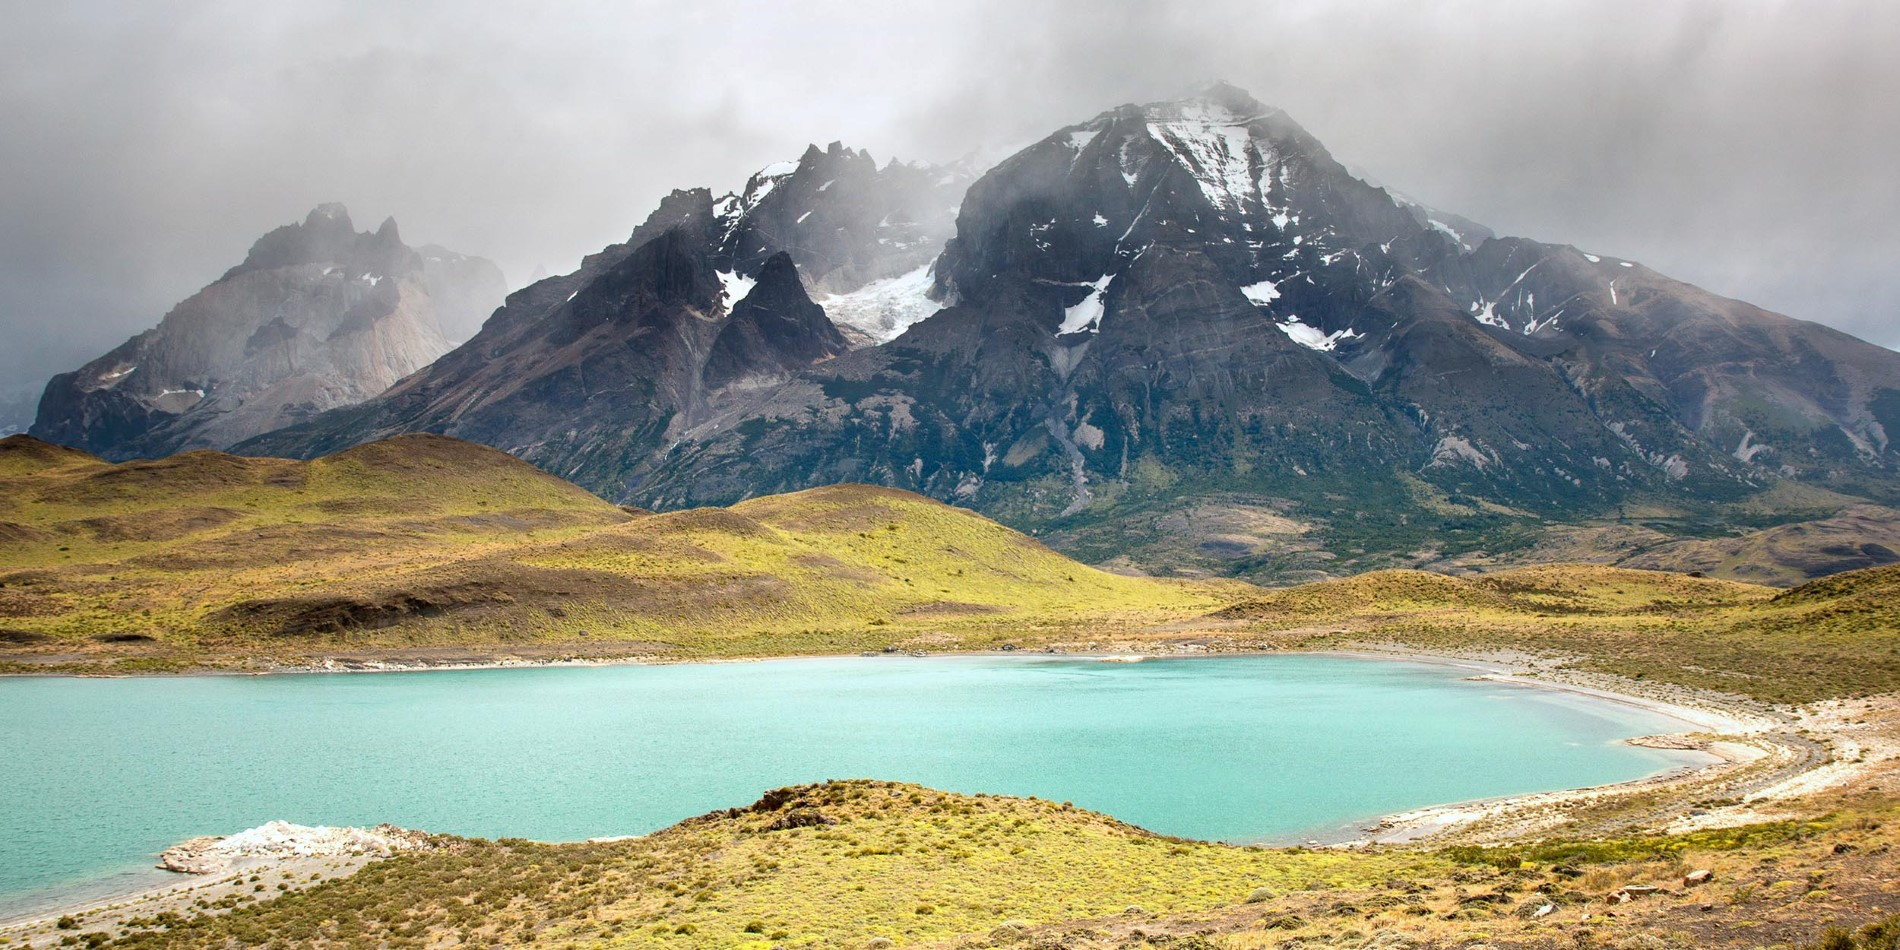 A body of water with Torres del Paine National Park in the background